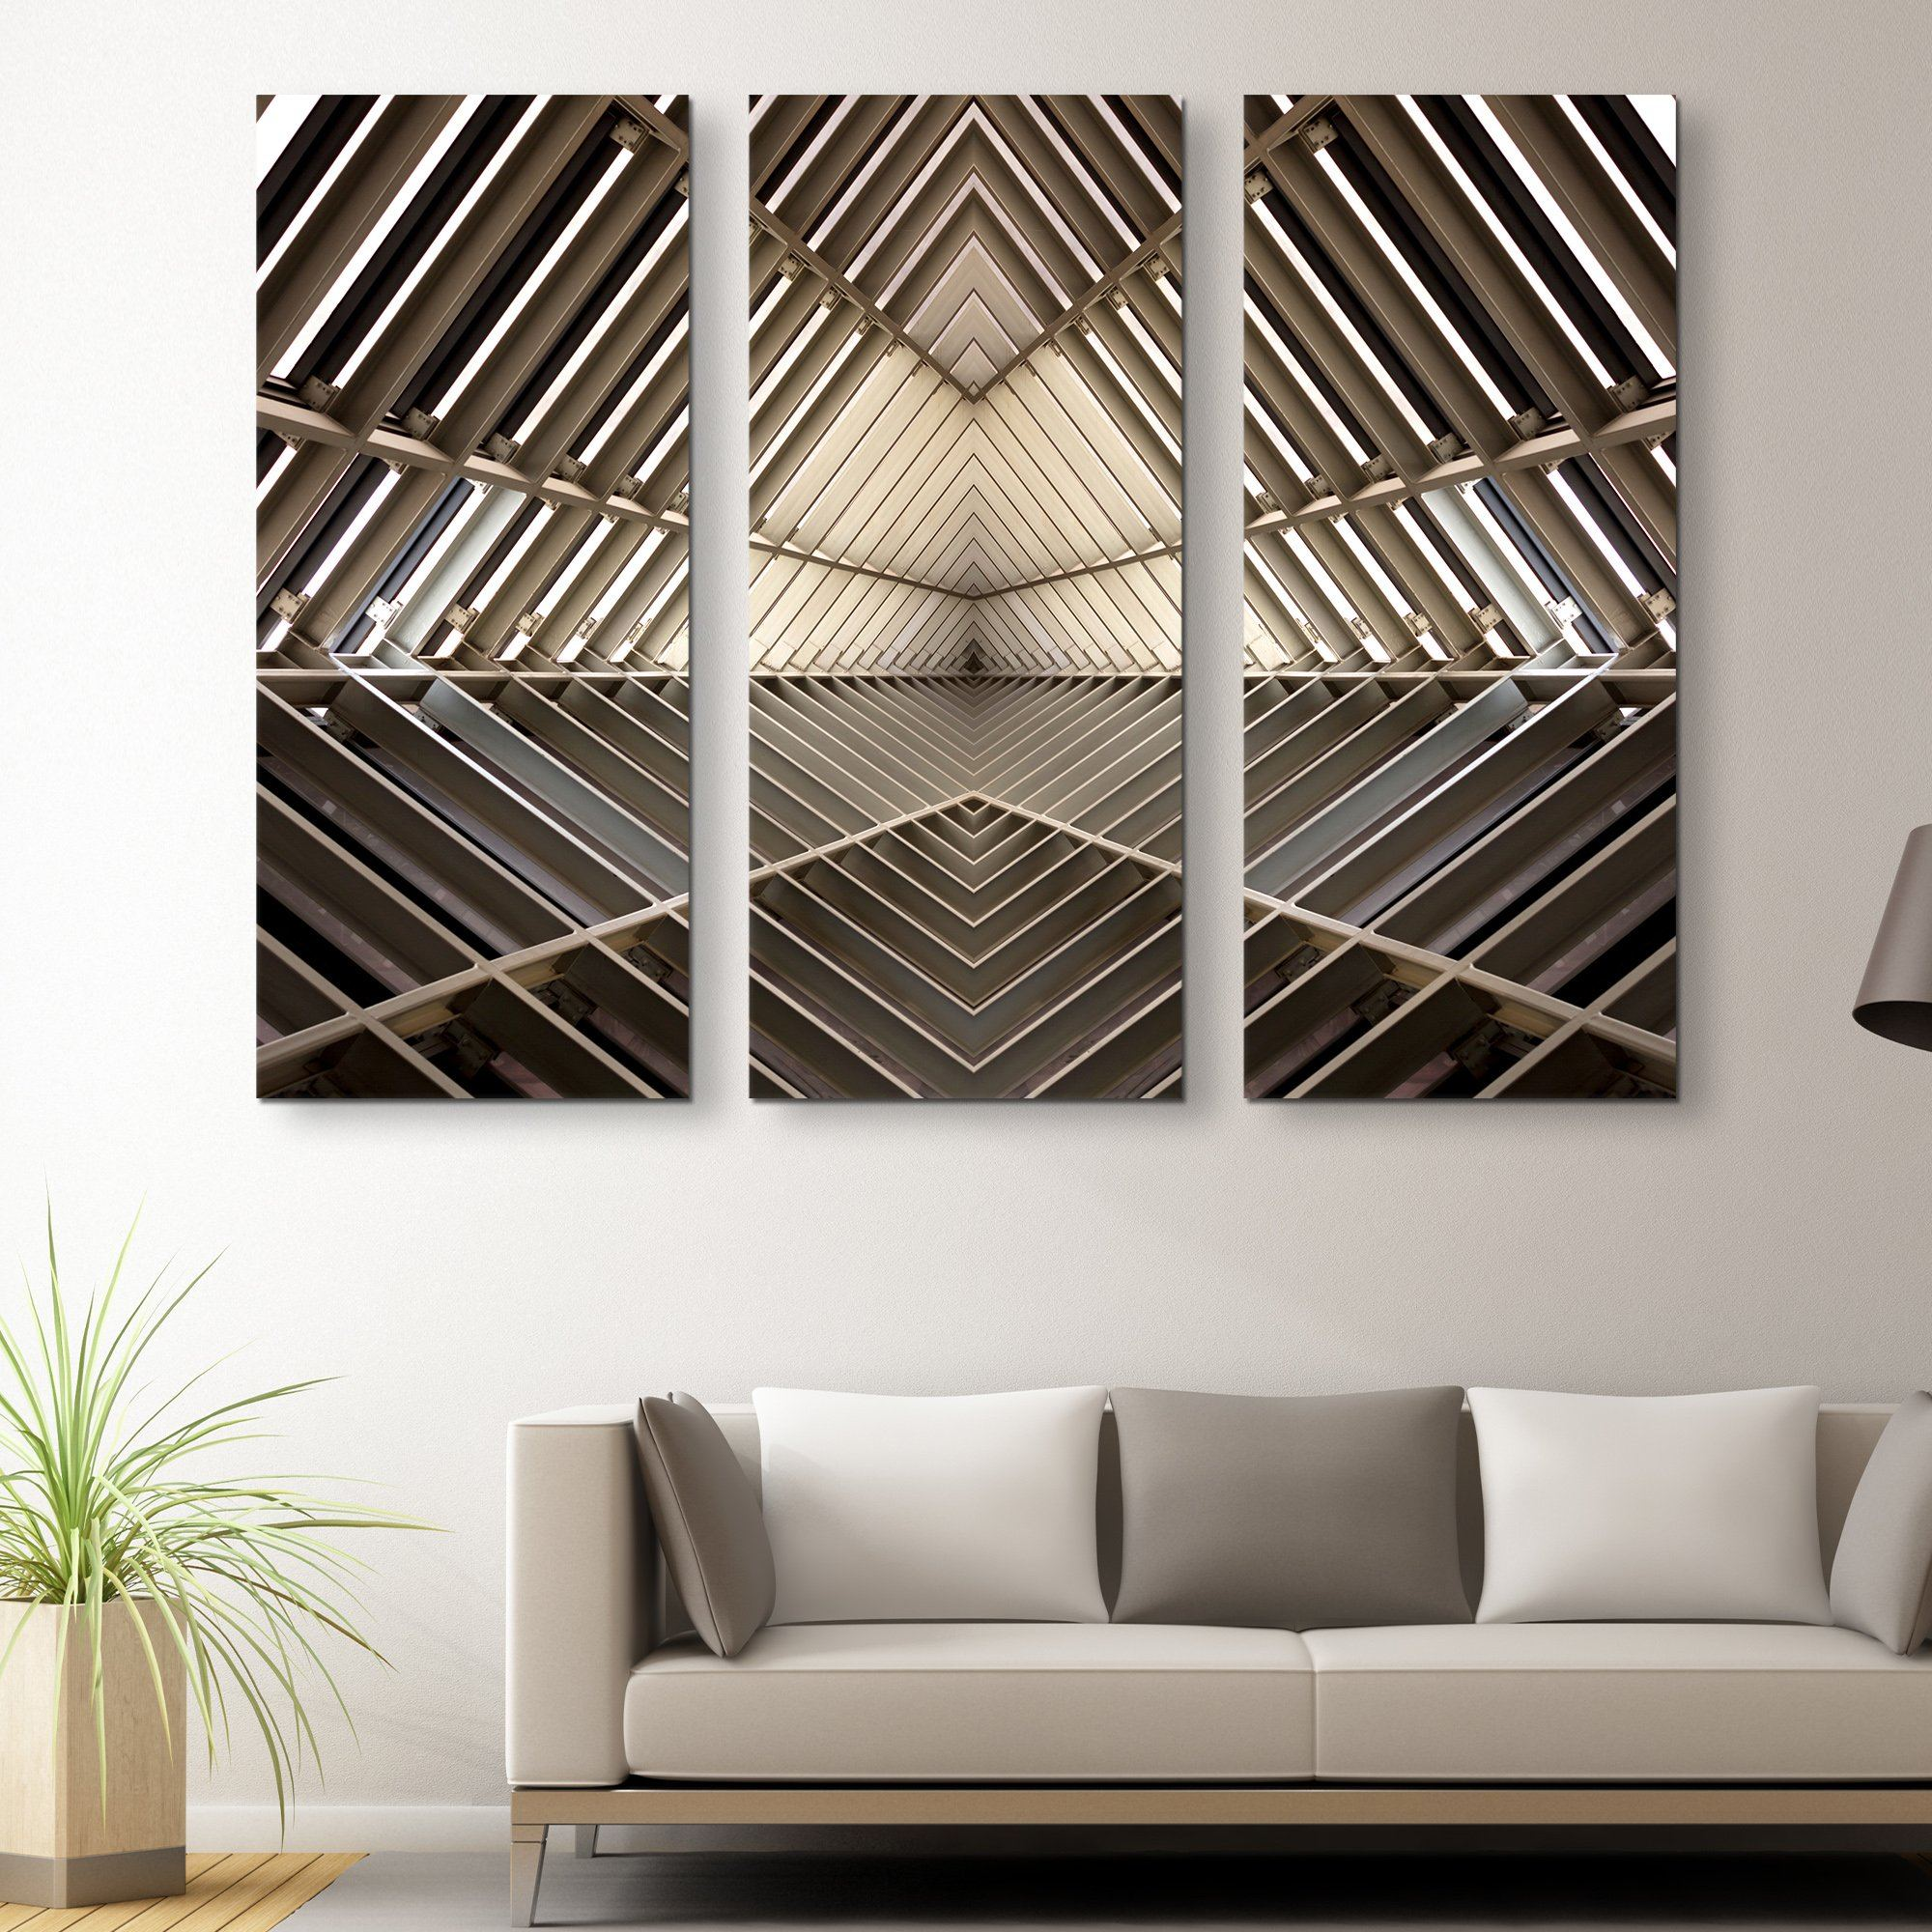 3 piece Metal Structure wall art